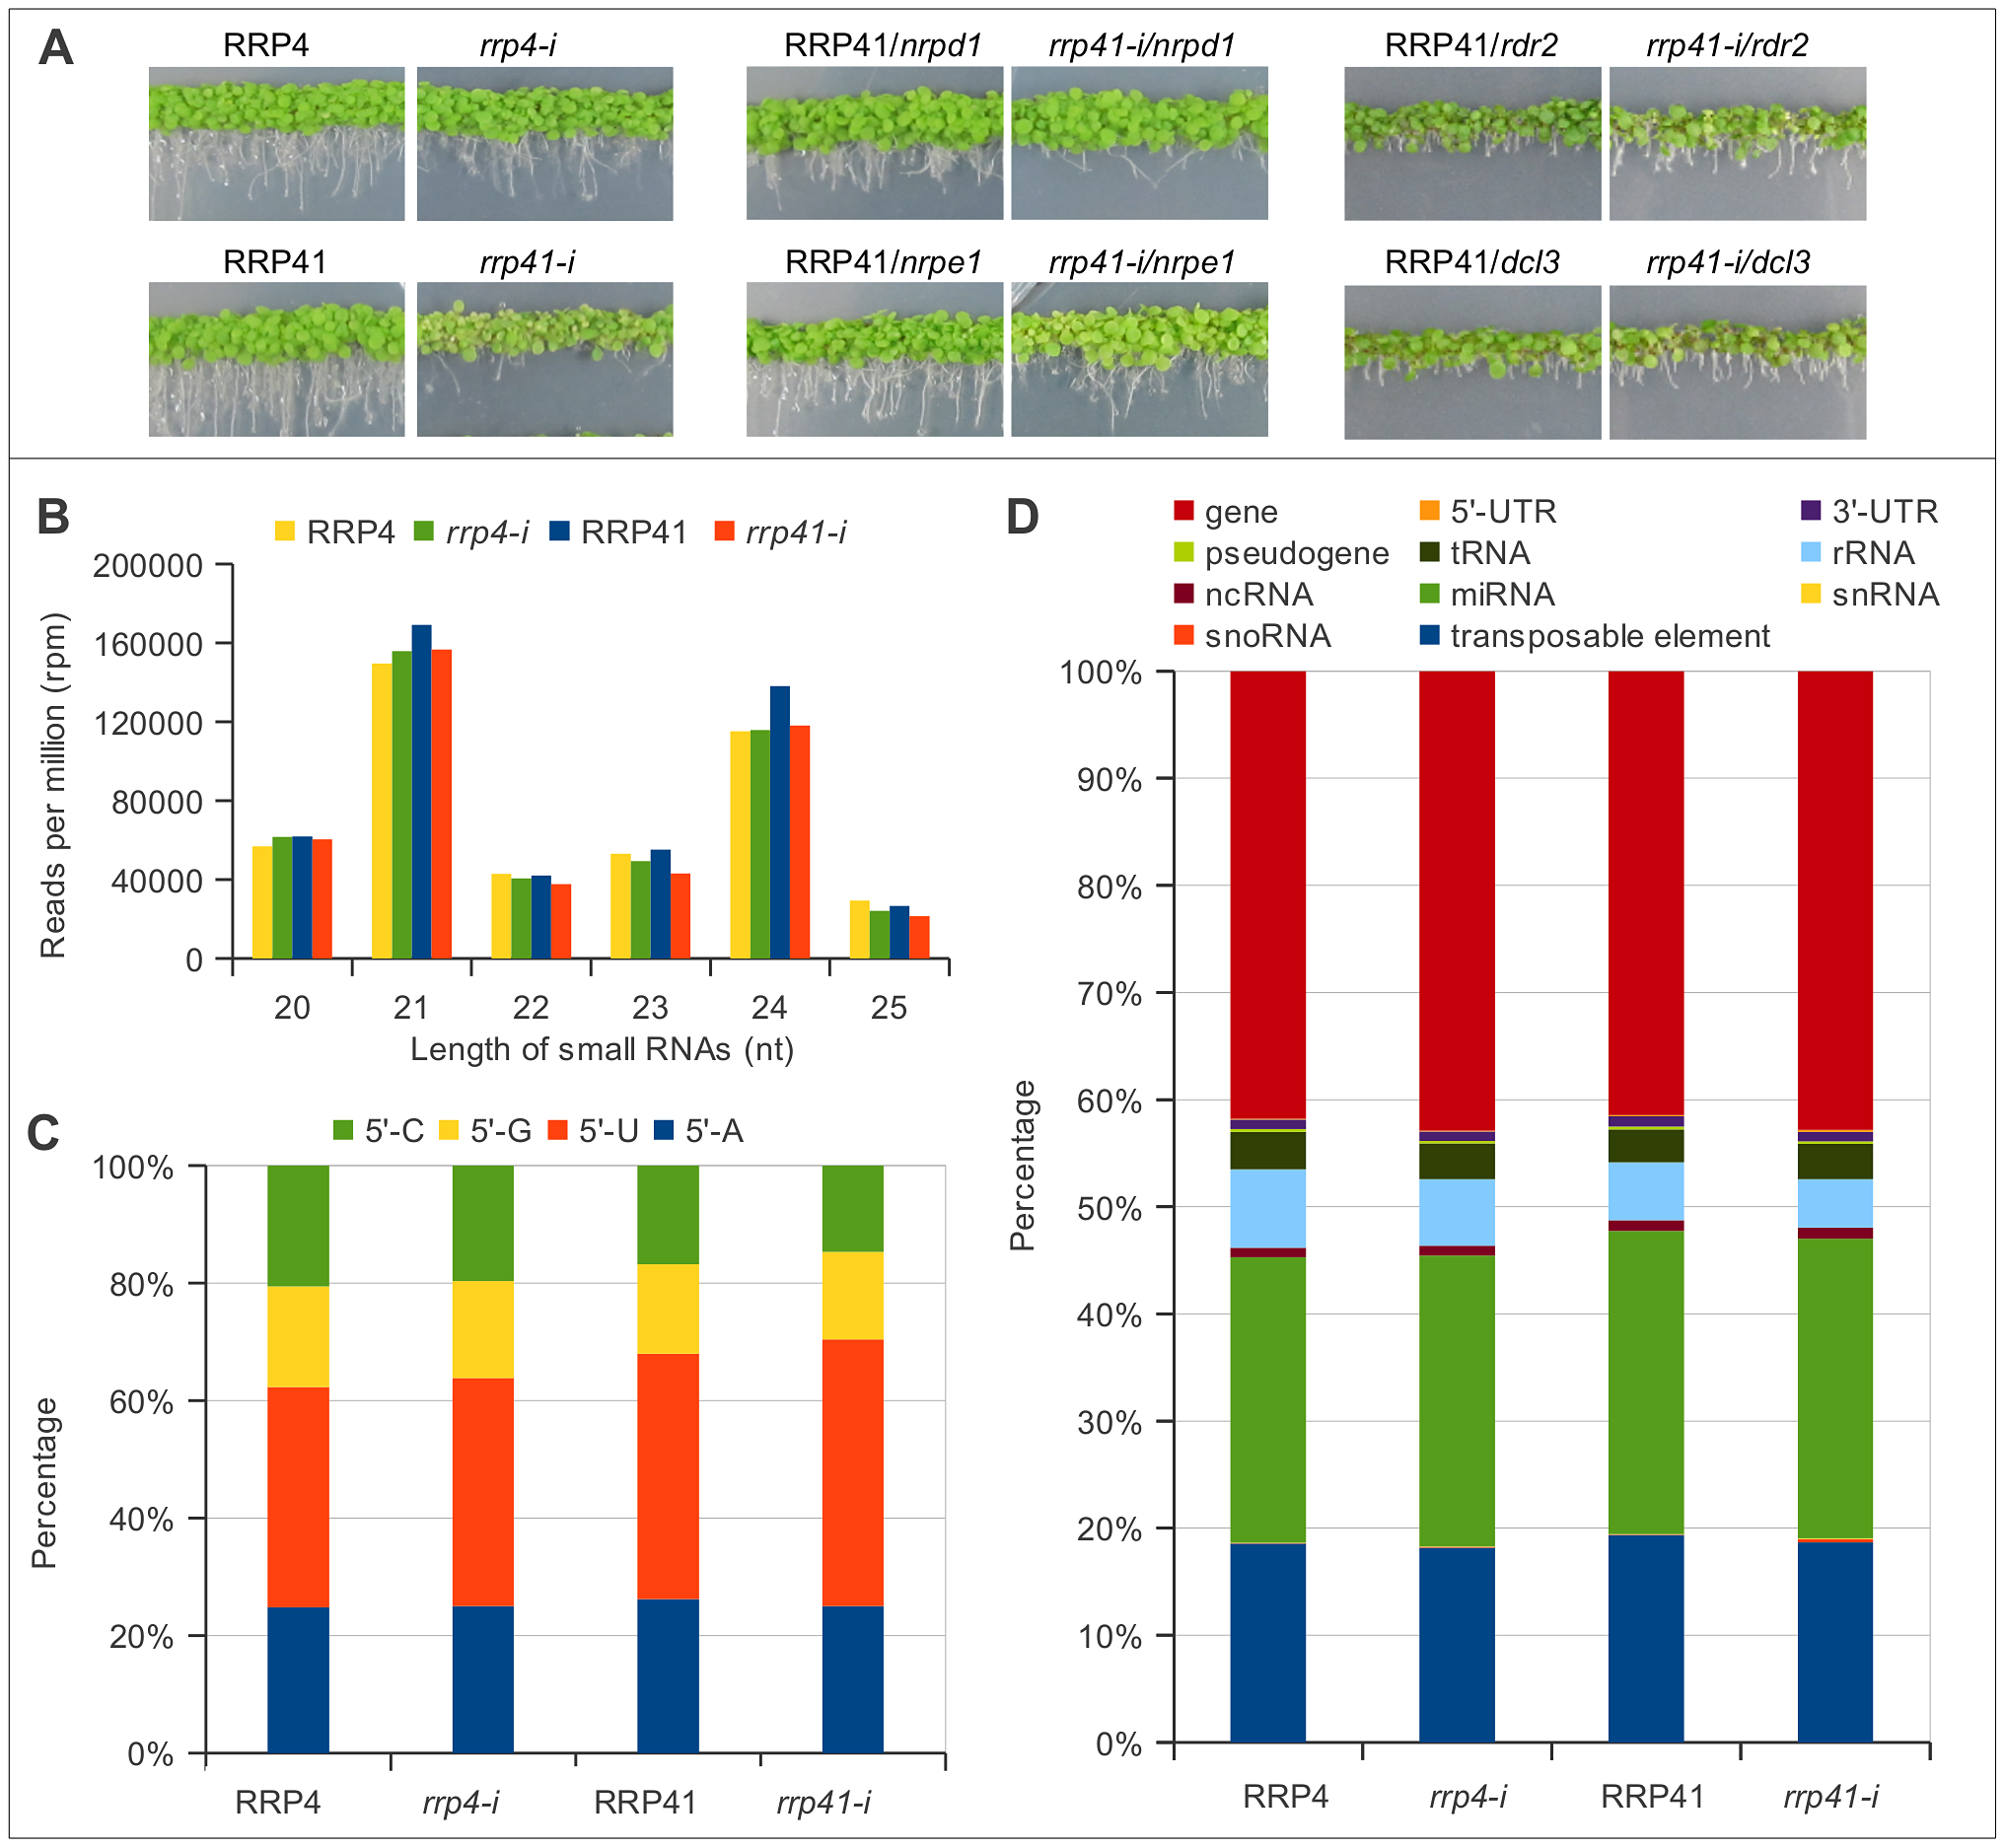 Characterization of up-regulated loci and smRNA populations upon depletion of exosome subunits RRP4 and RRP41.